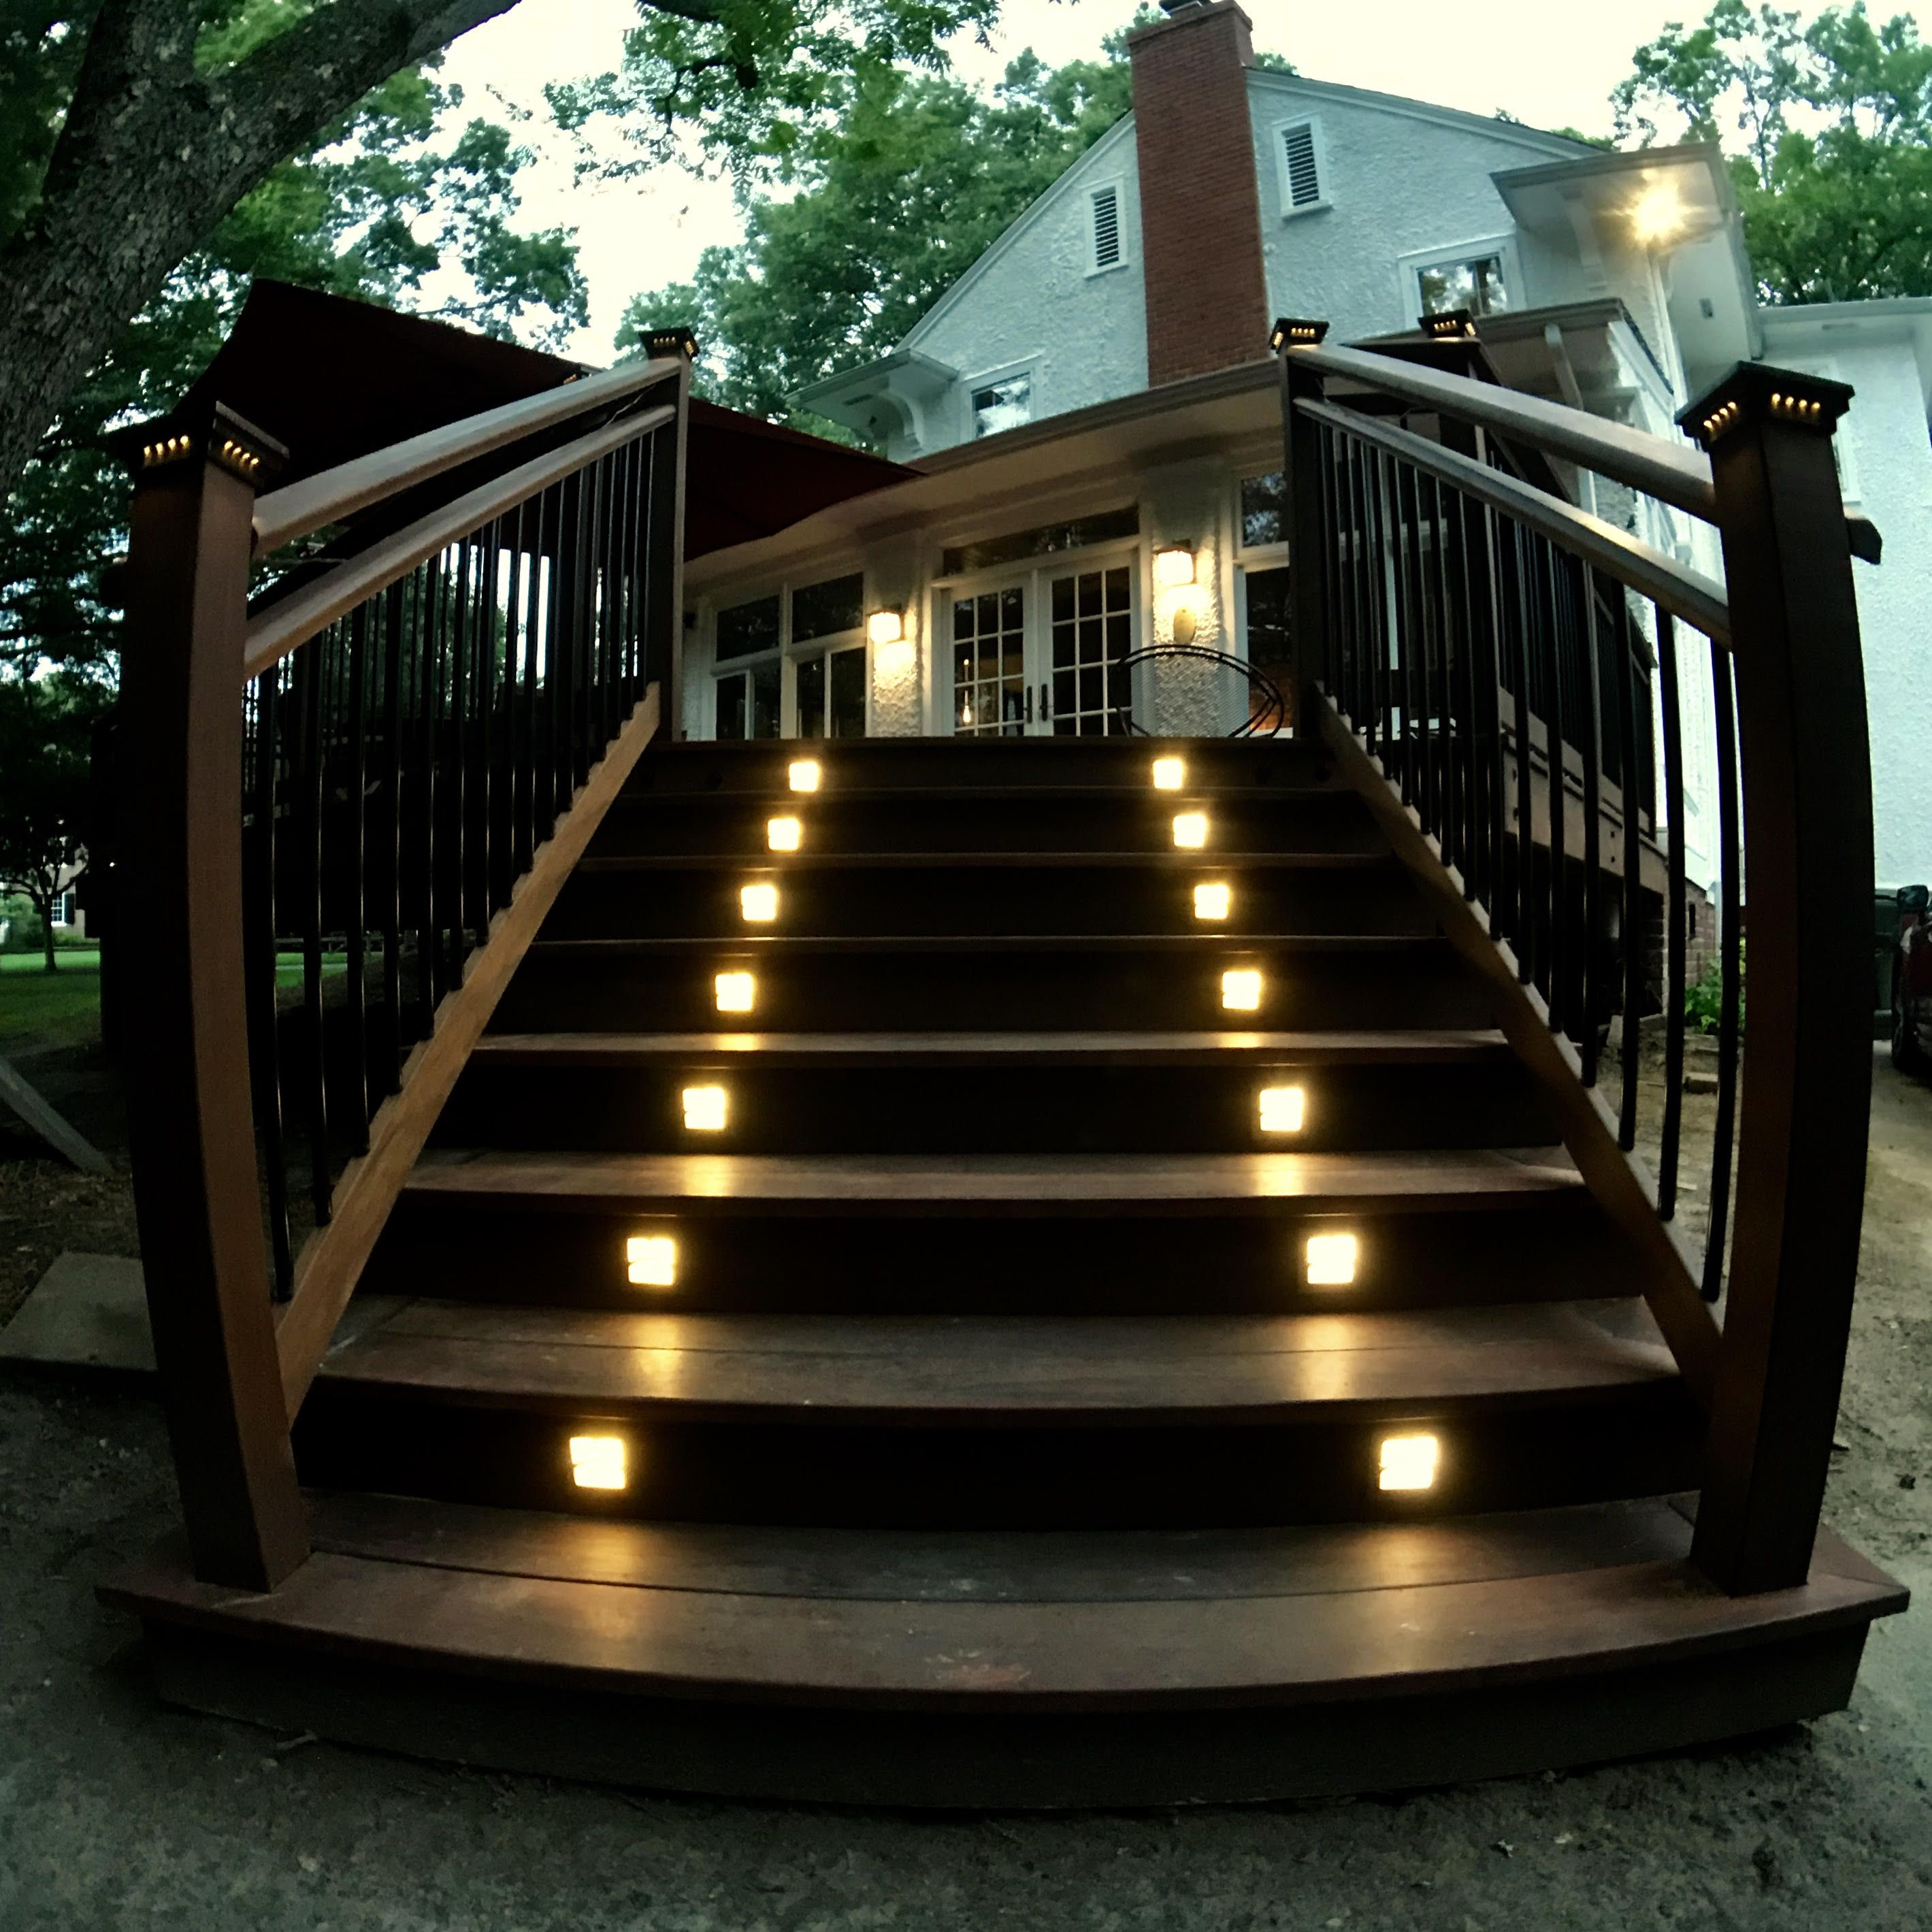 Moab Recessed Led Riser Light By Highpoint Deck Lighting Deck Lighting Step Lighting Outdoor Deck Lighting